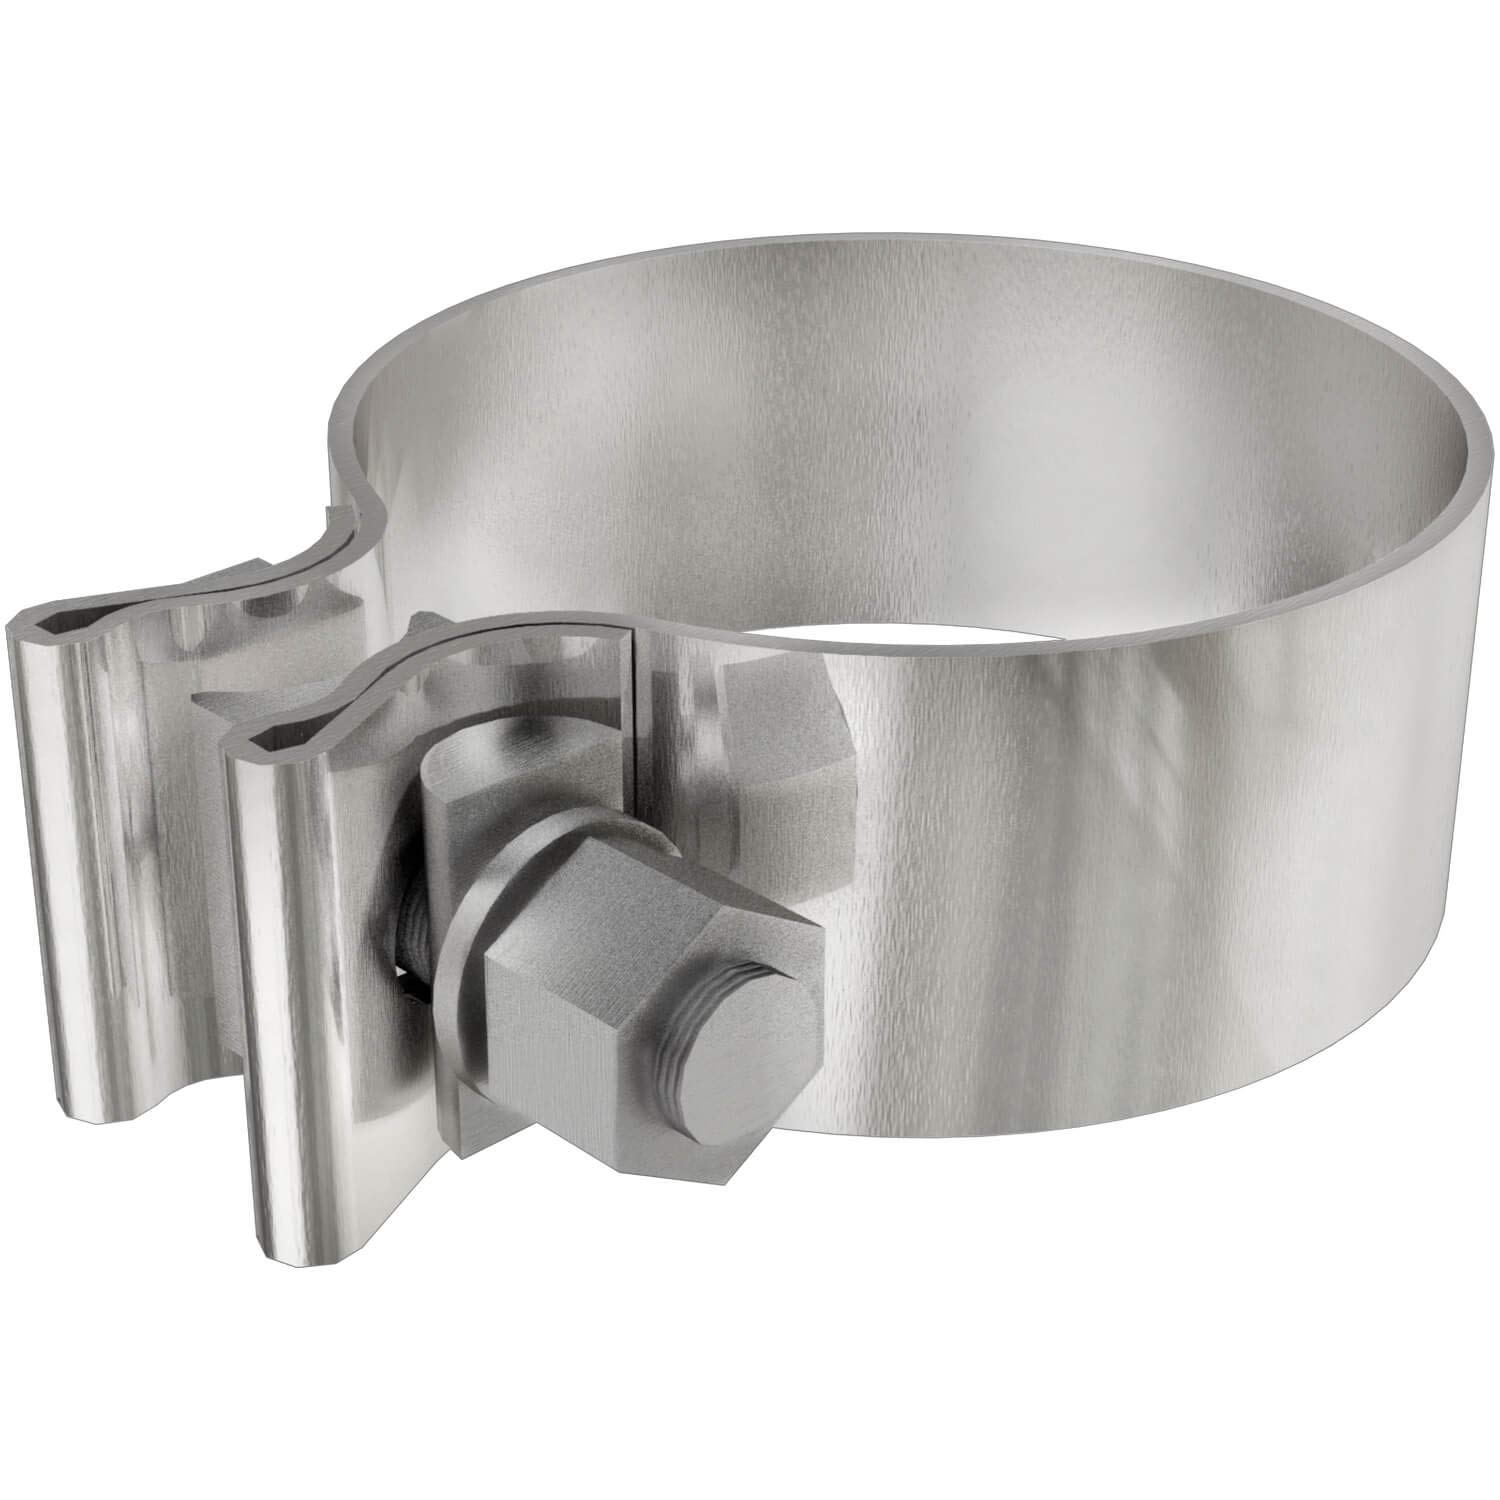 Pack of 10 Magnaflow 10162 Torca AccuSeal Stainless Steel 2.5 Exhaust Band Clamp